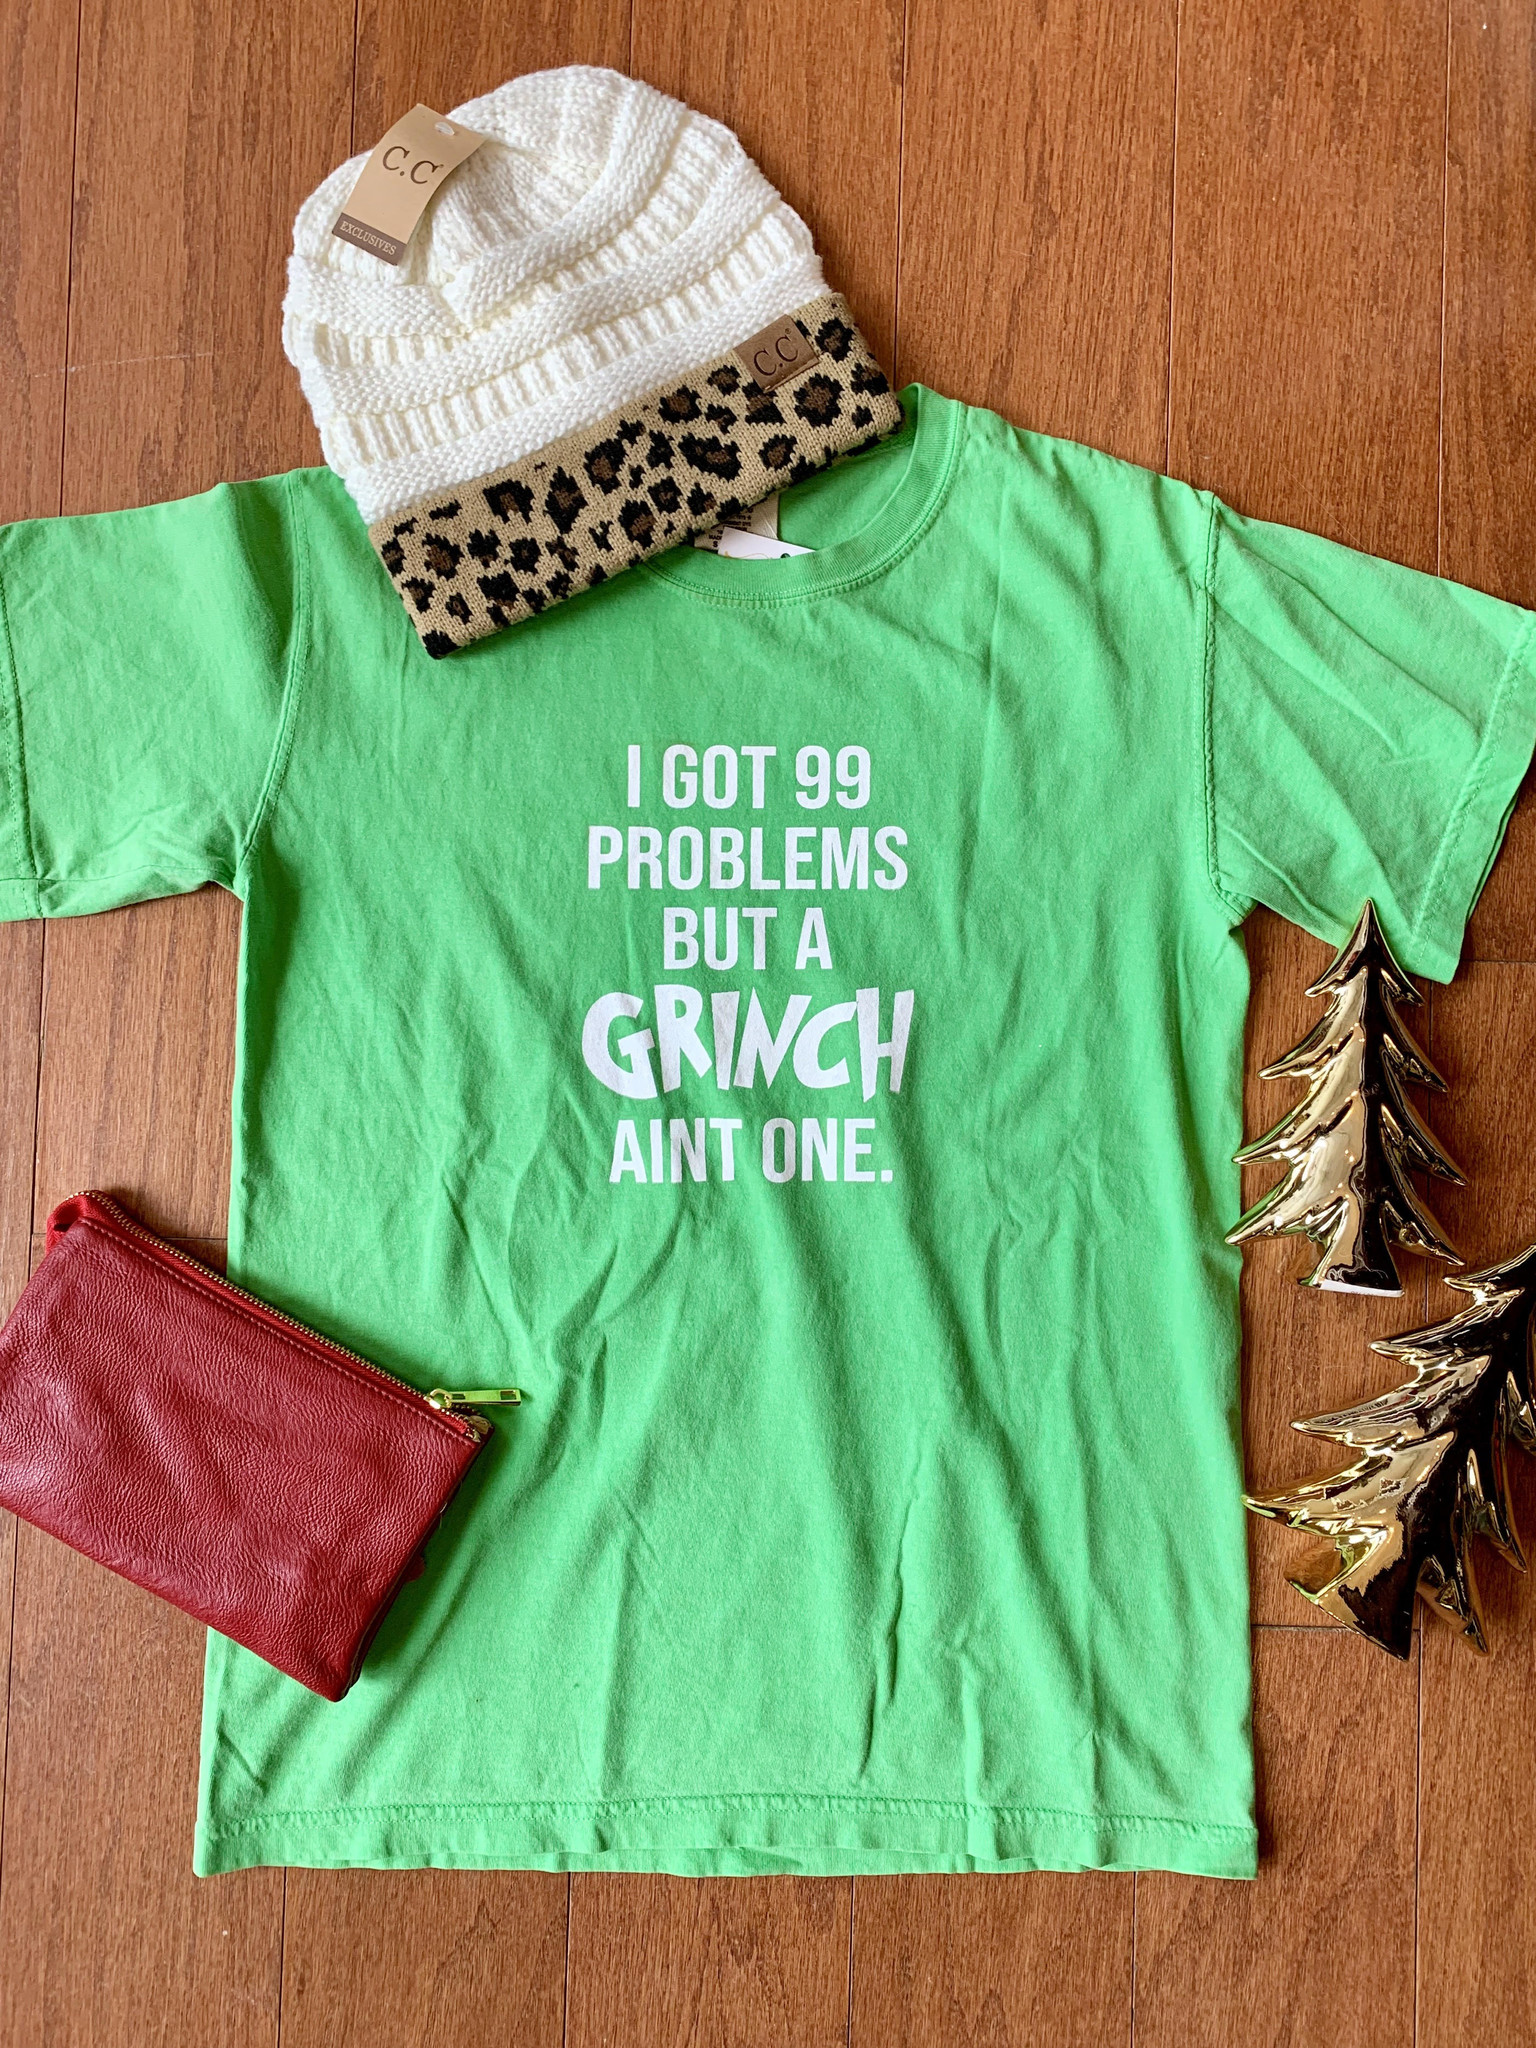 Vintage Soul 99 Problems But a Grinch Ain't One